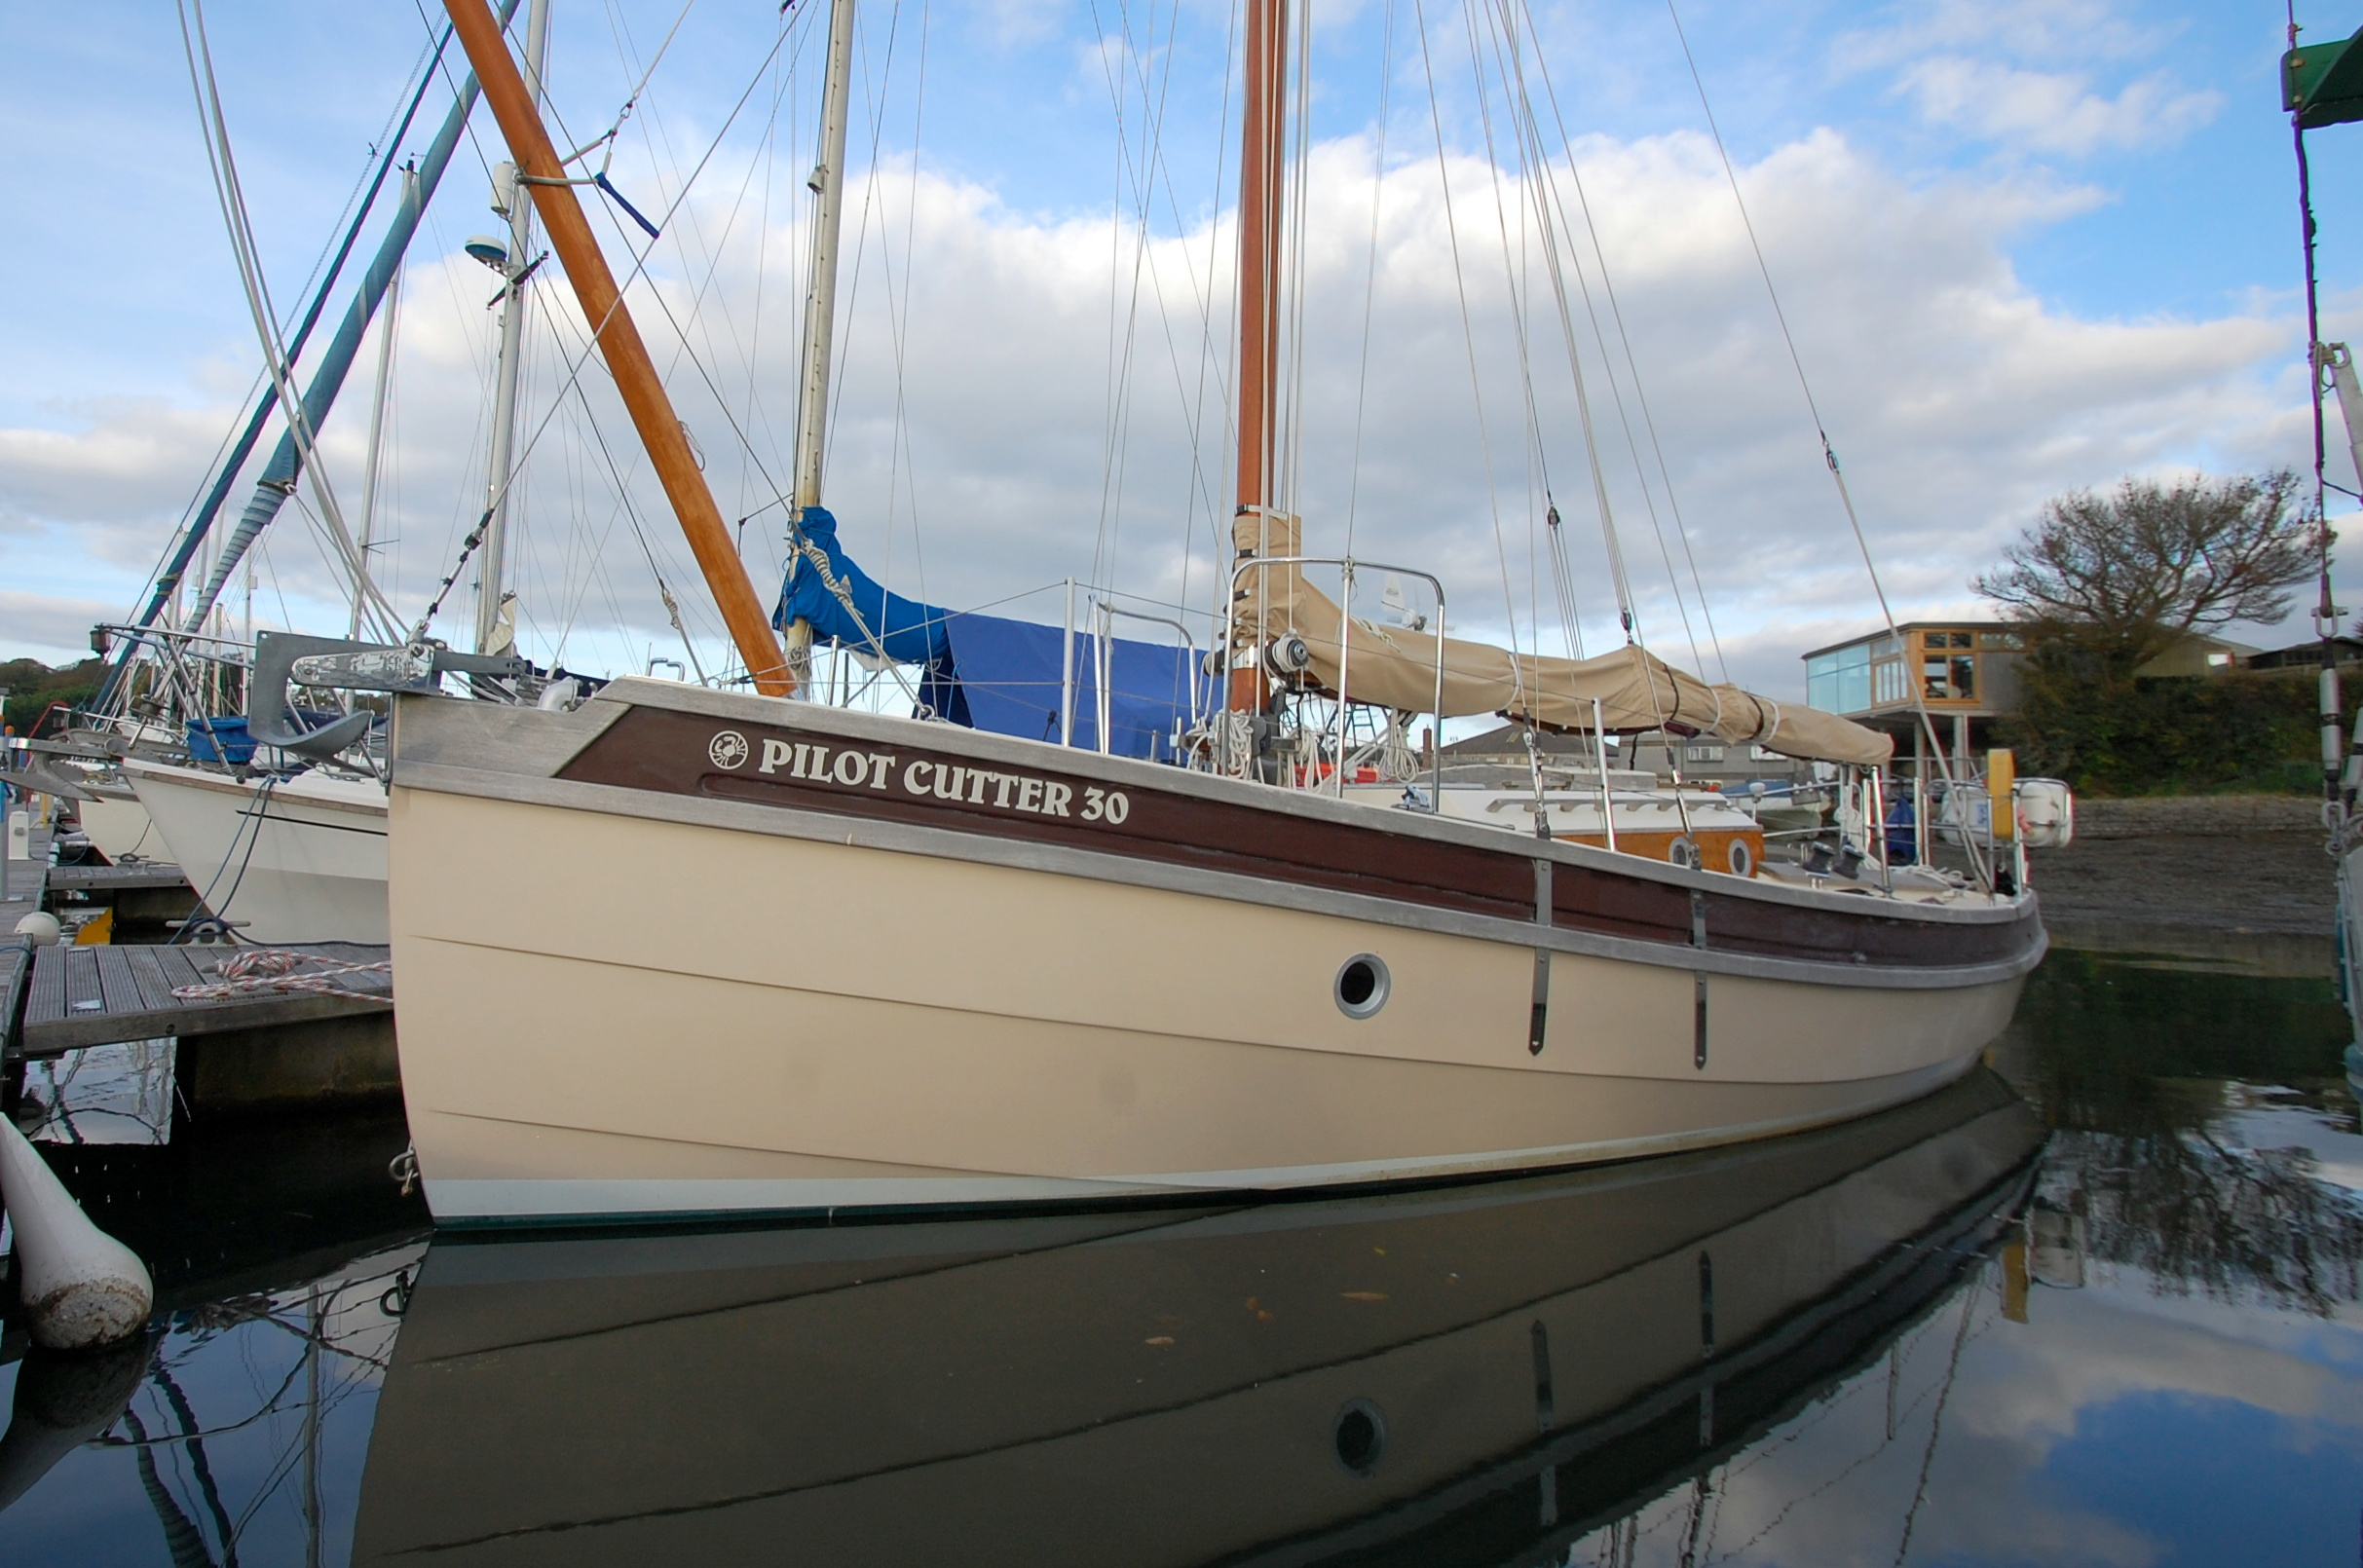 Cornish Crabber Pilot Cutter 30 Cornish Crabber Pilot Cutter 30